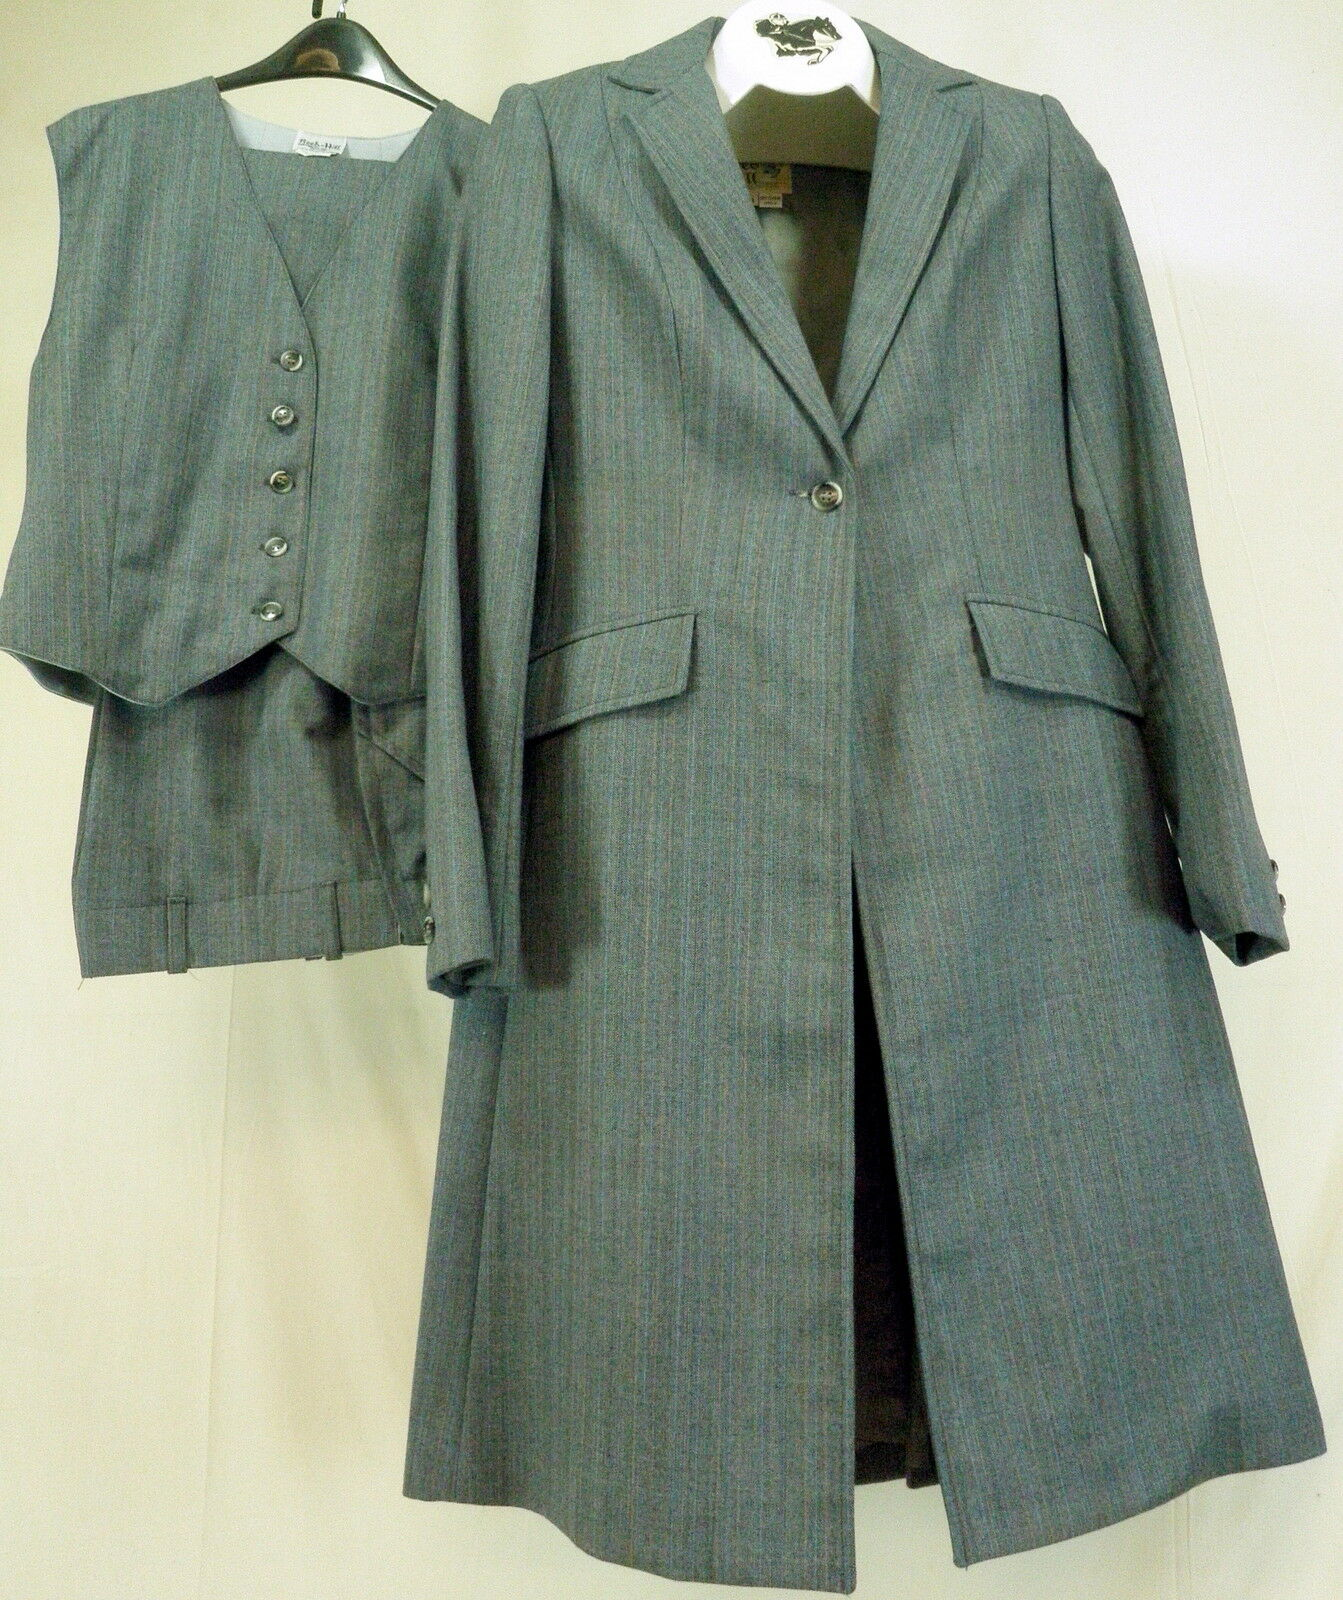 Reed Hill  Ladies Saddleseat suit 3 pc Grey Multistripe wool blend 10 Made in USA  online